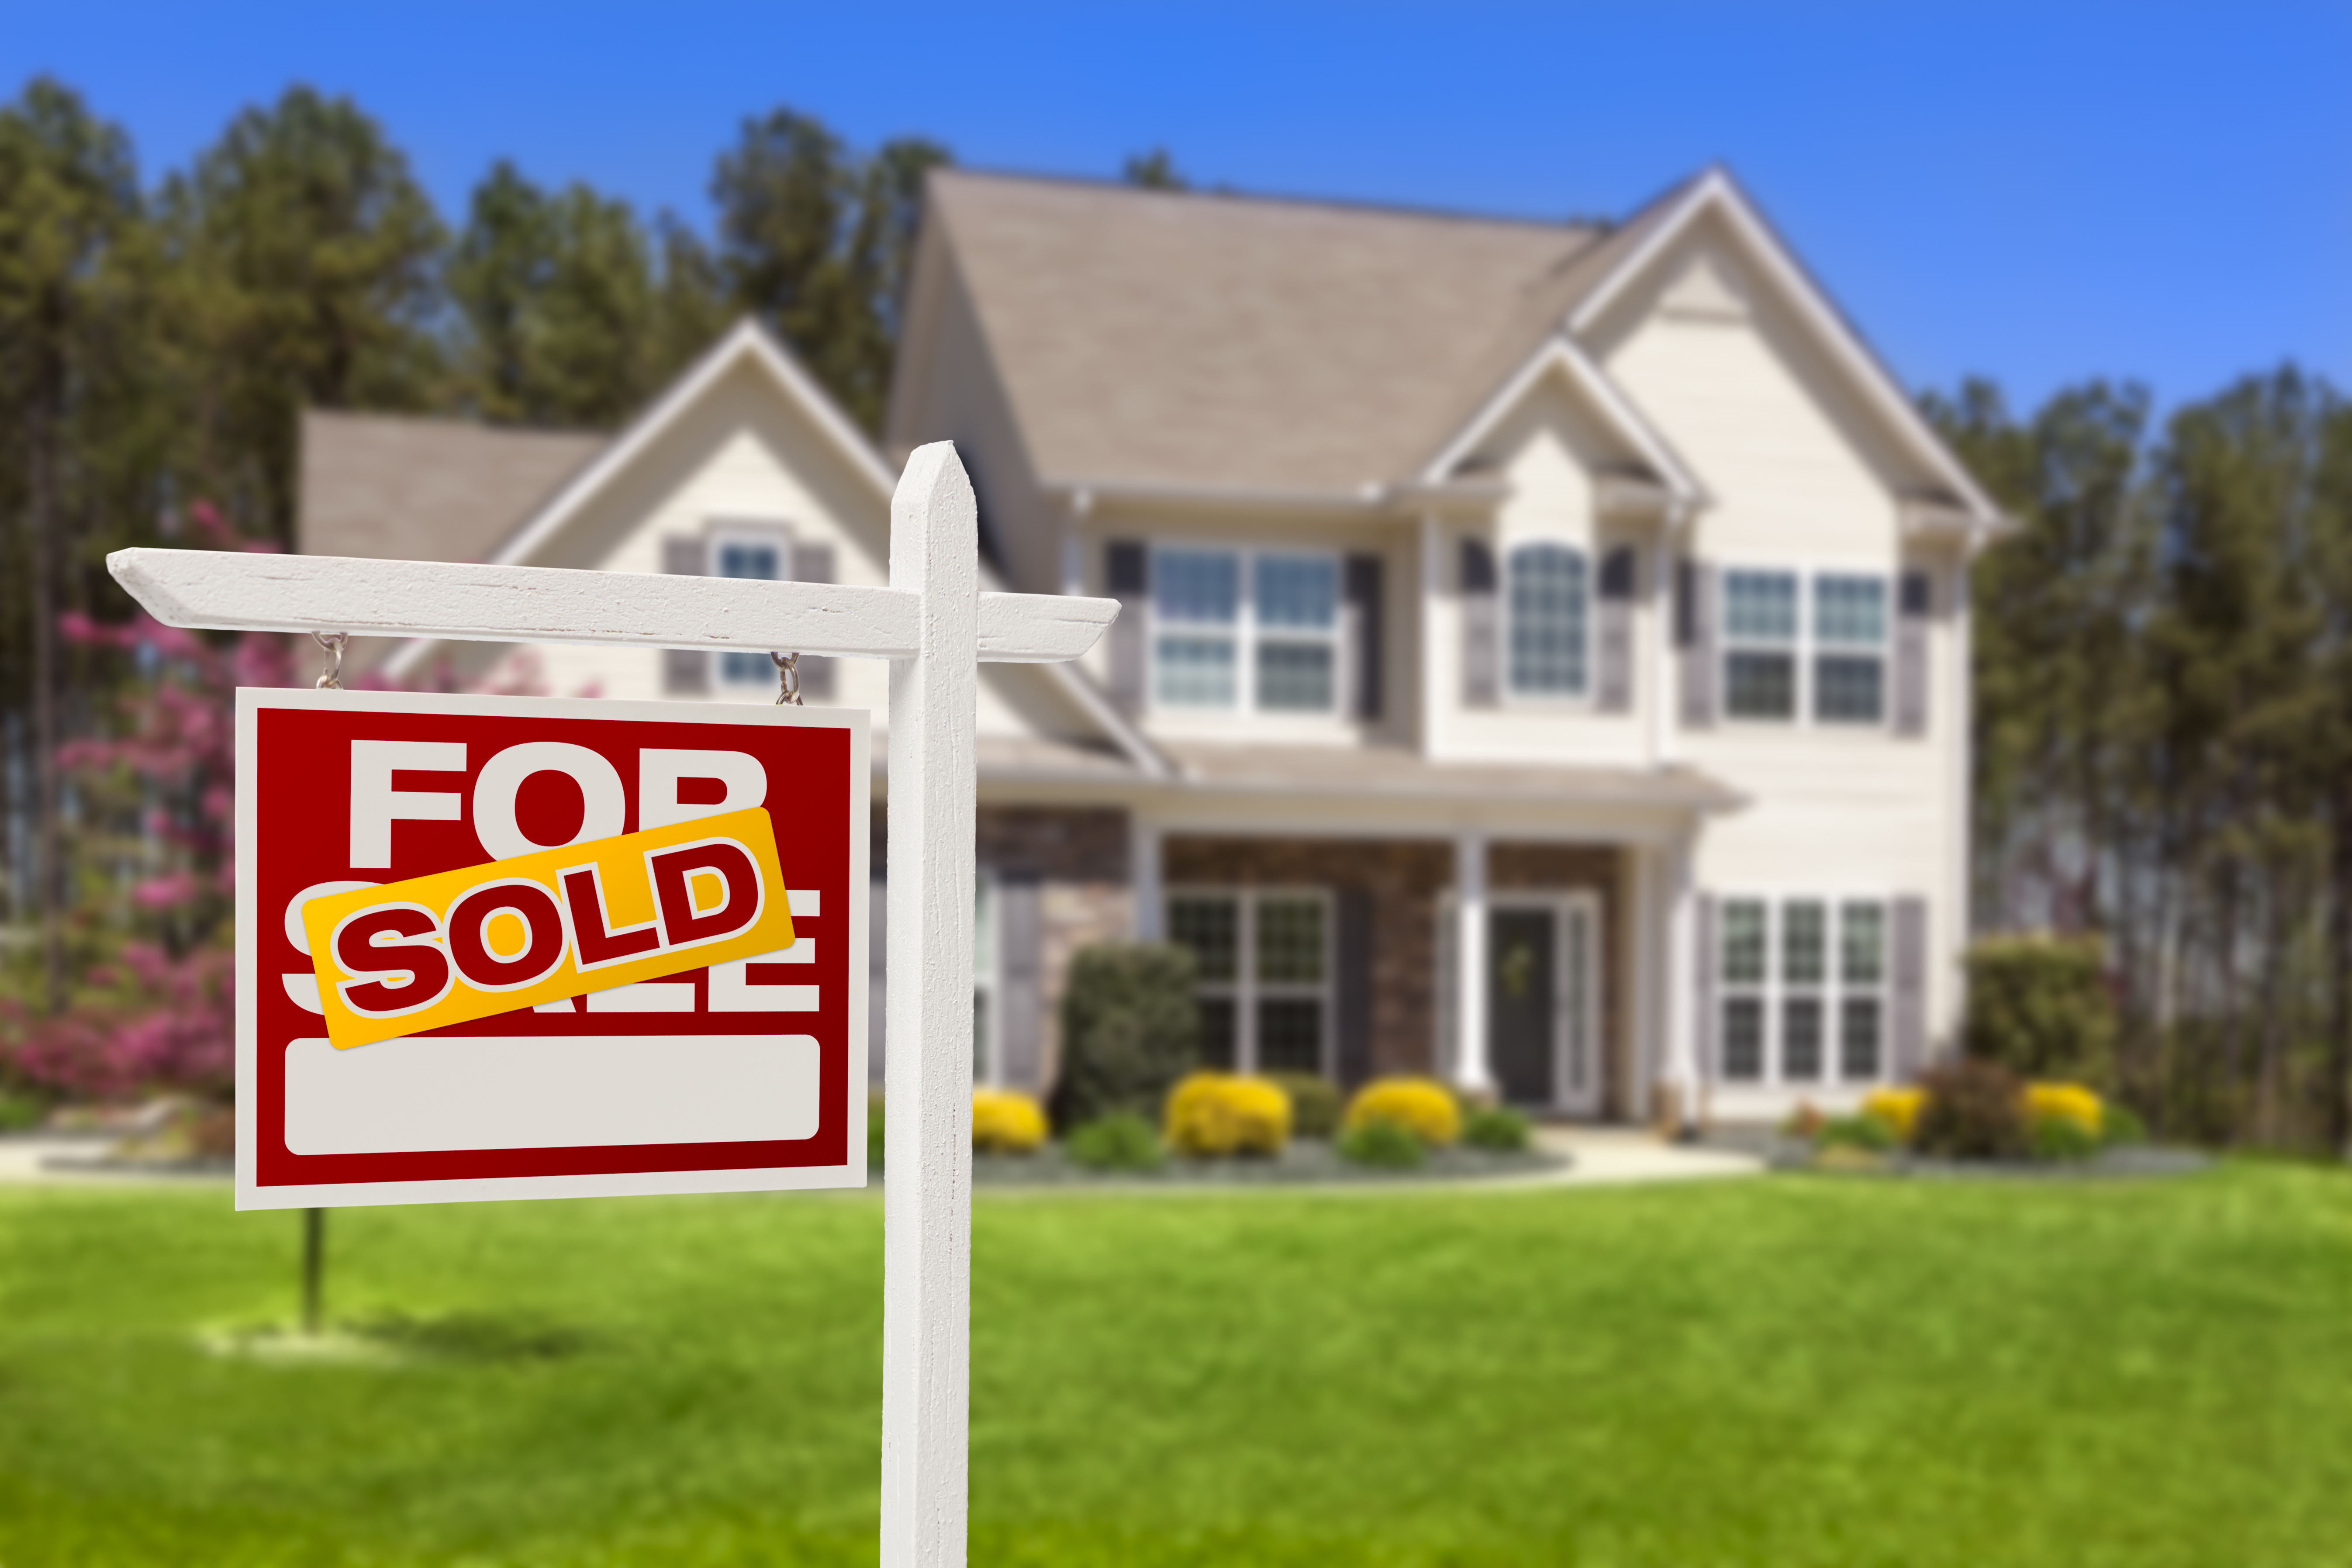 Homes For Sale in Cache County